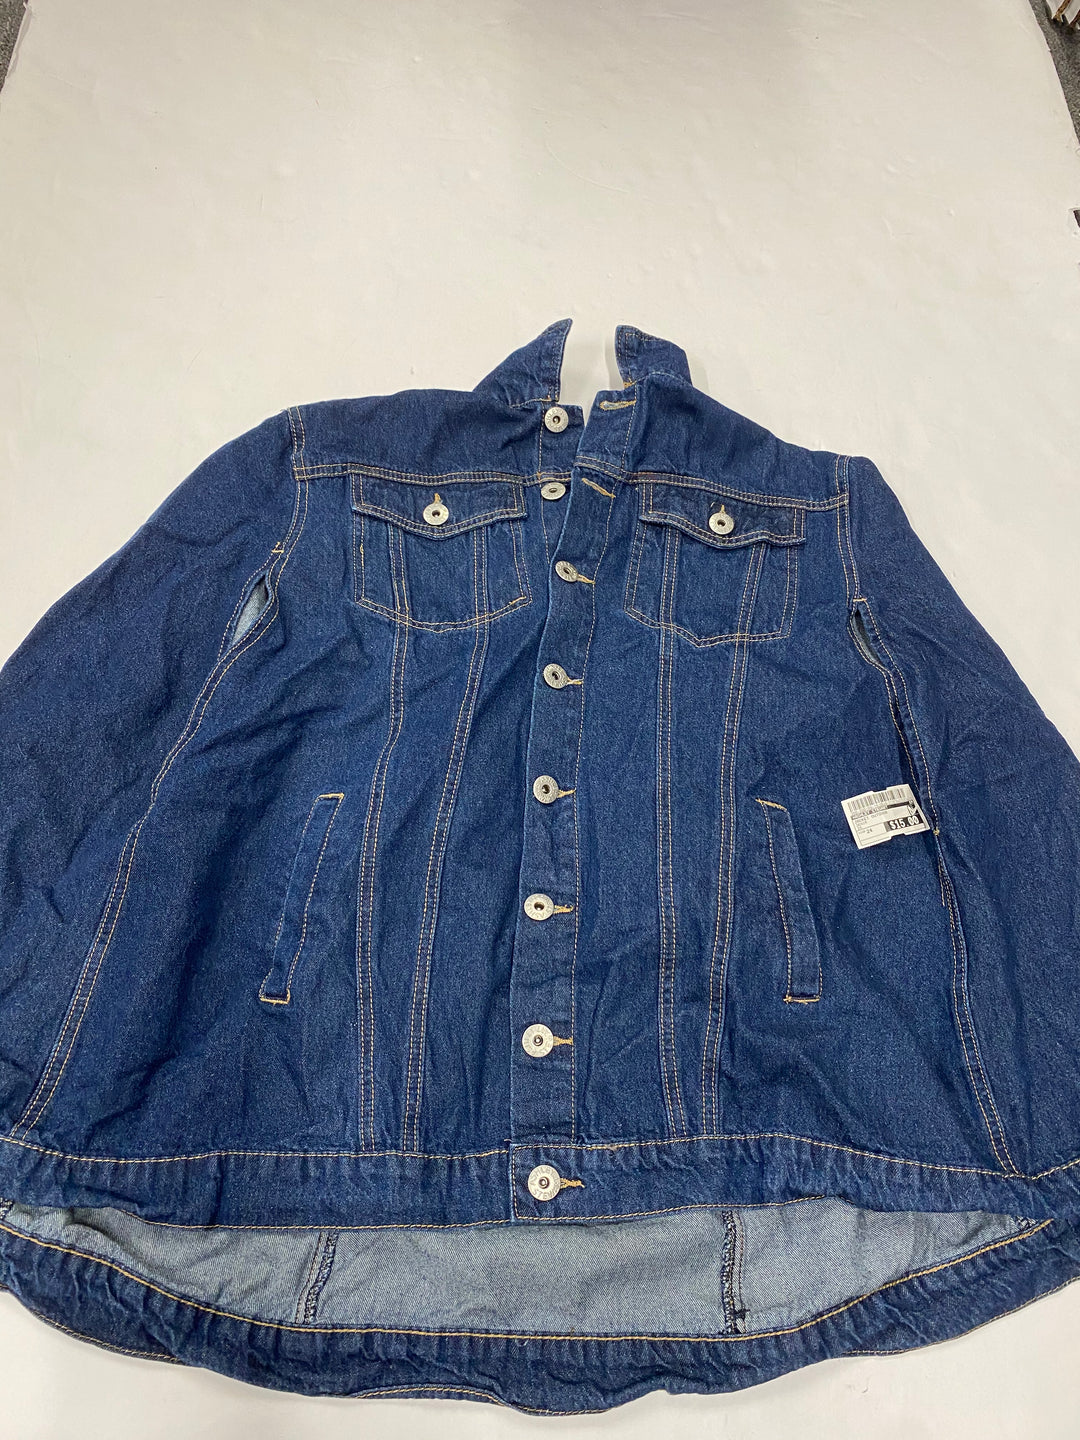 Primary Photo - BRAND: ASHLEY STEWART <BR>STYLE: JACKET OUTDOOR <BR>COLOR: DENIM <BR>SIZE: 24 <BR>SKU: 200-200199-16105